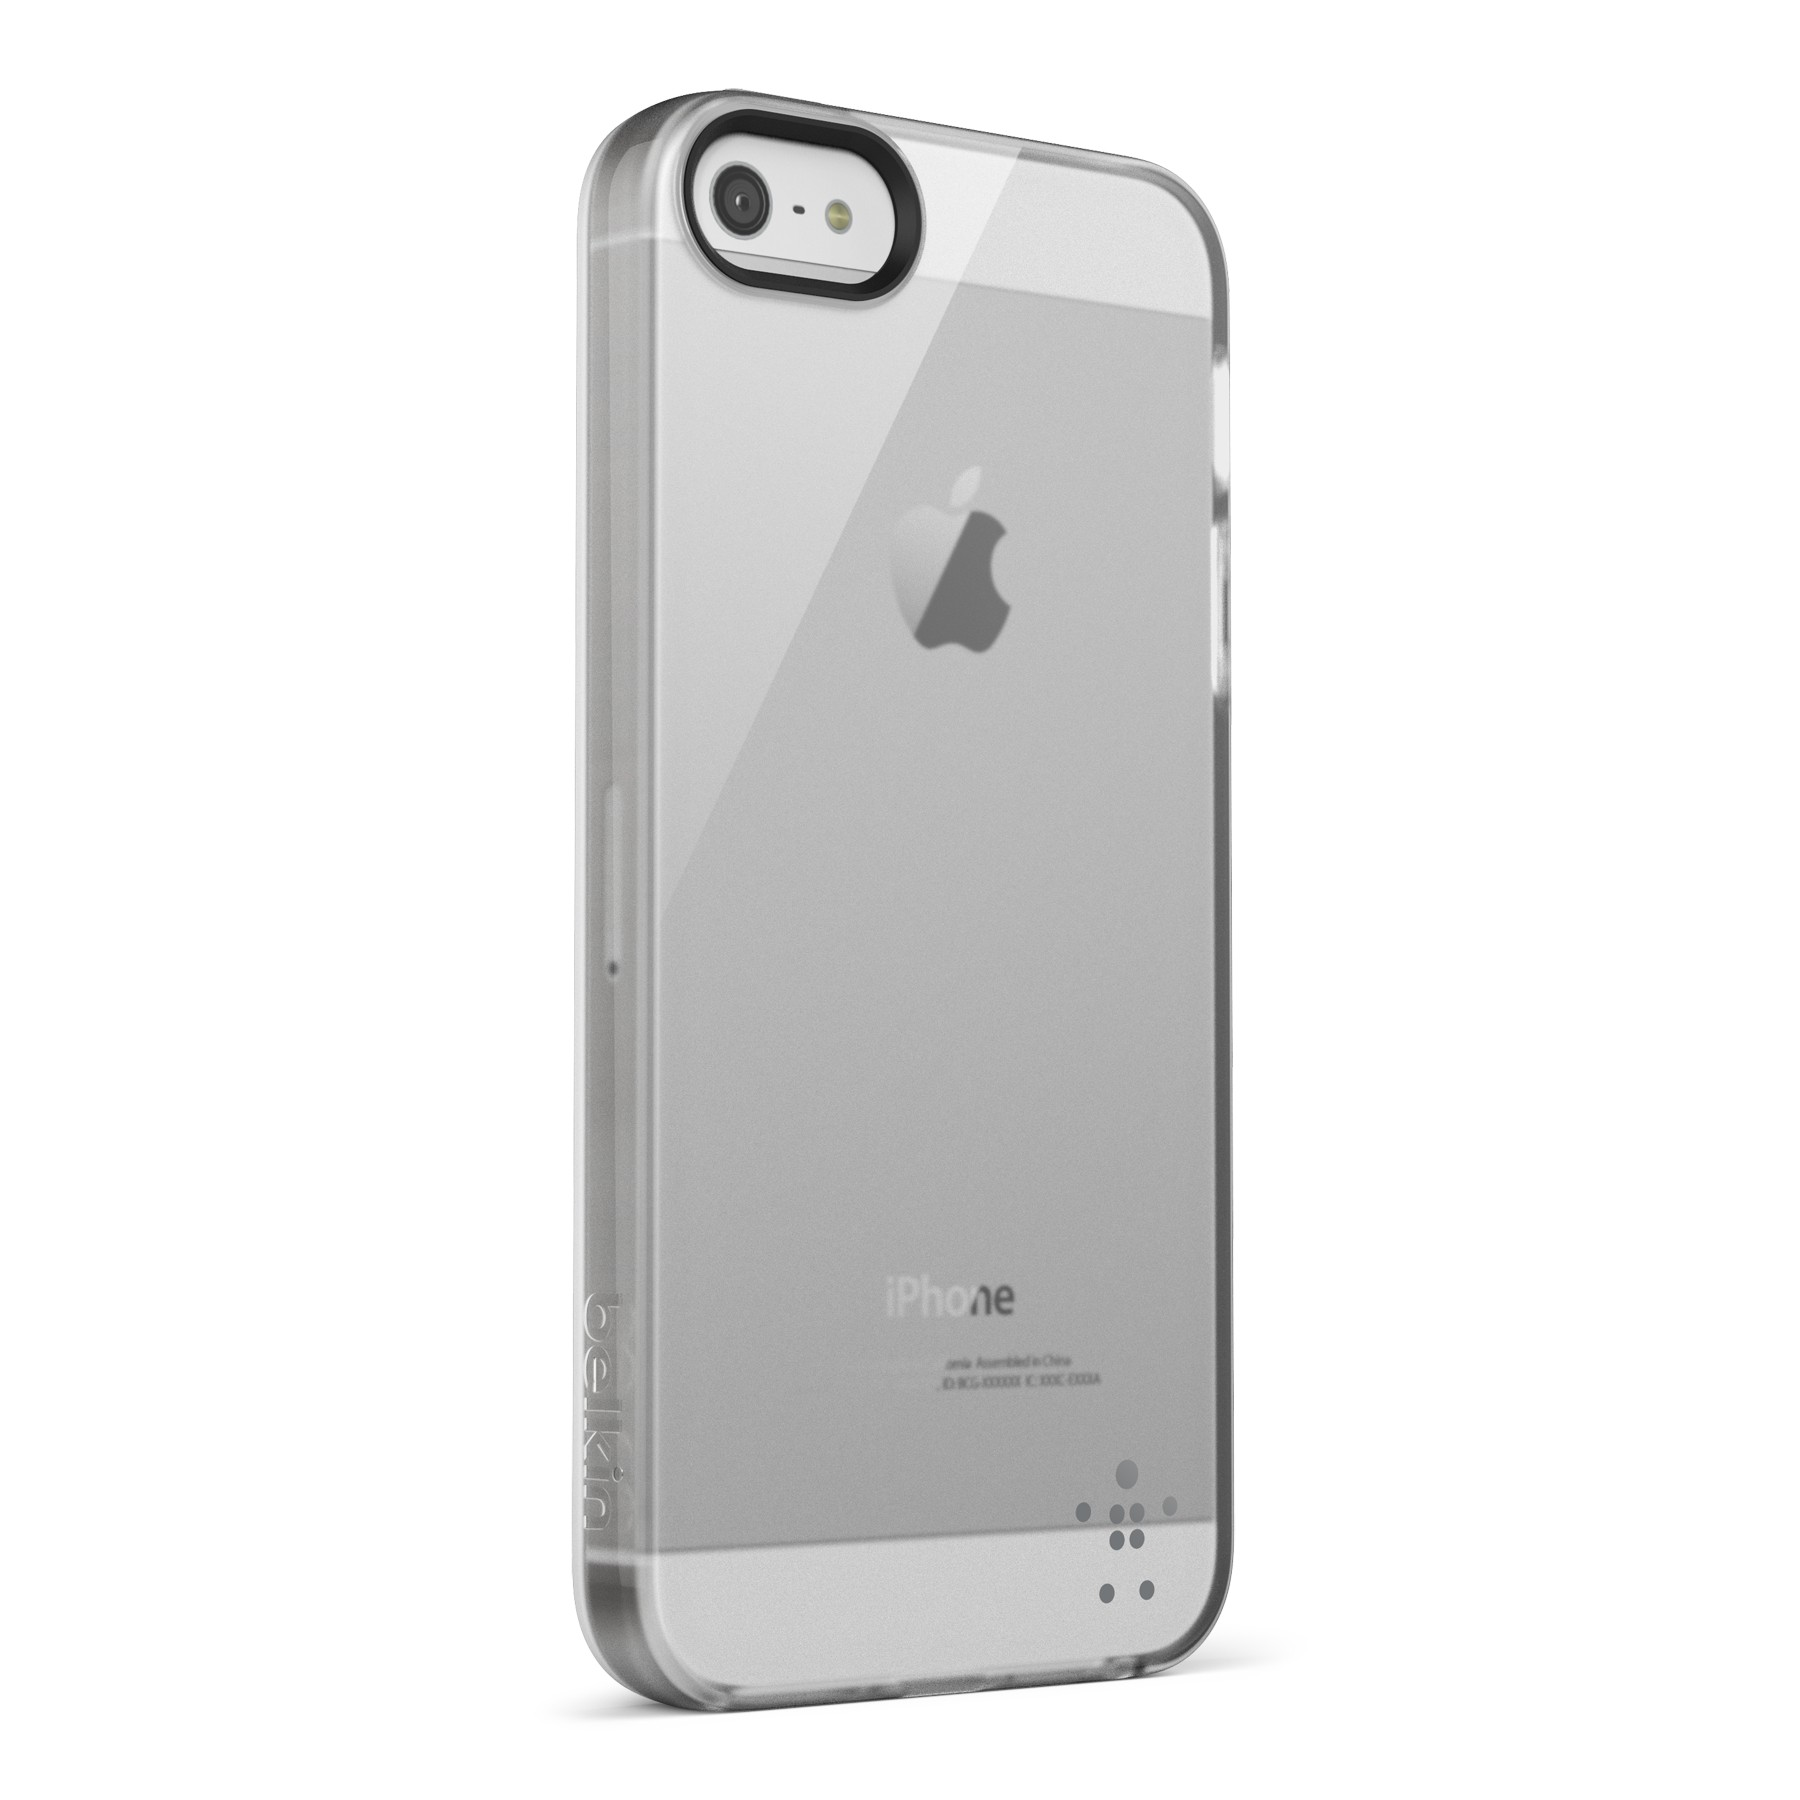 Belkin Grip Sheer Blacktop Case til iPhone 5 - Transparent